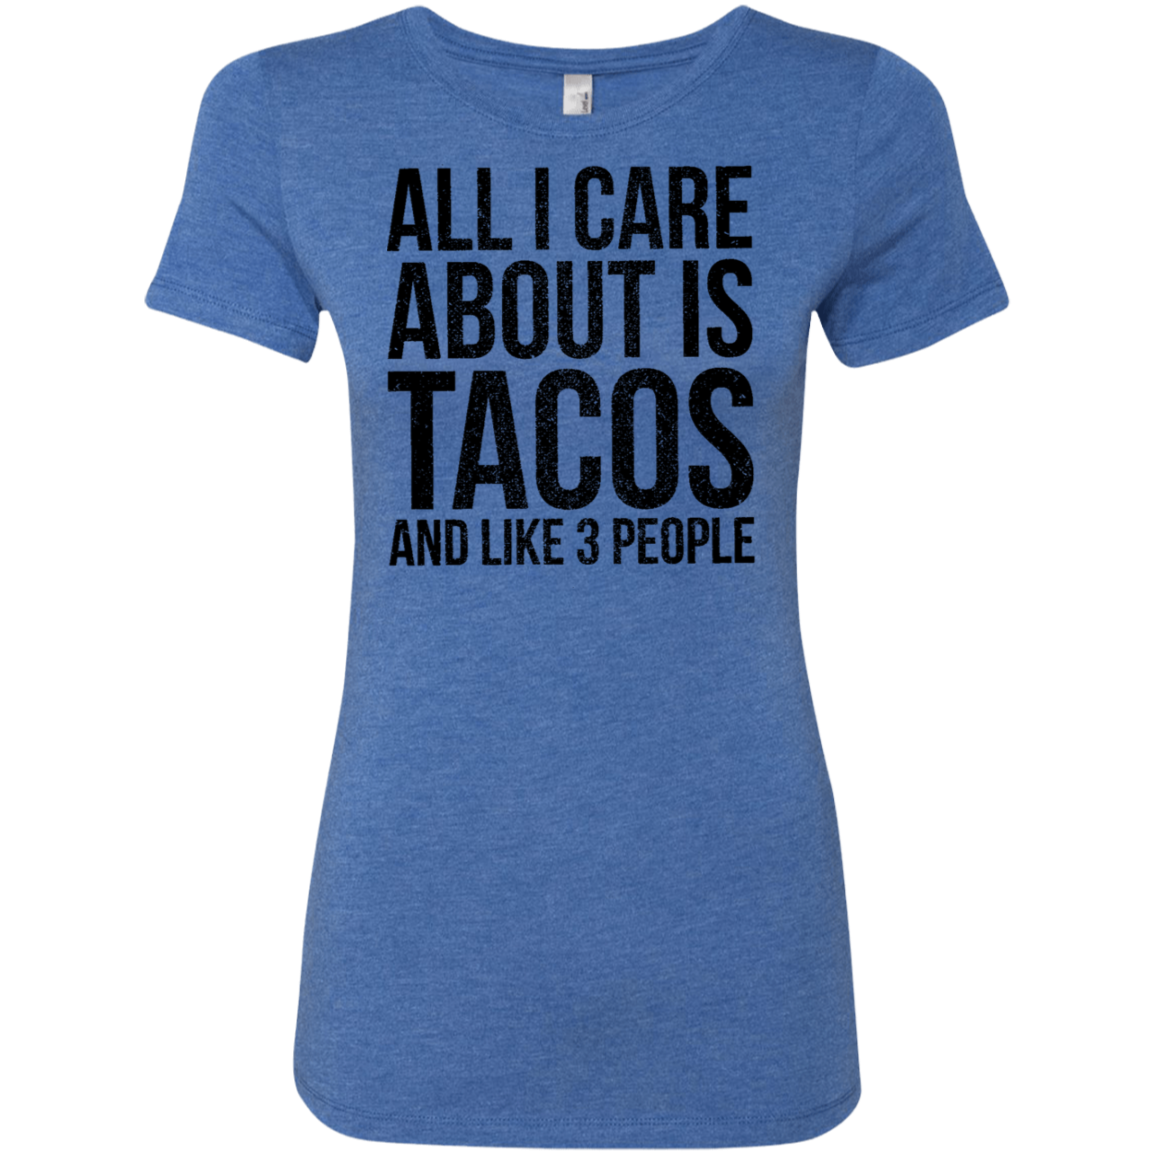 All I Care About is Tacos and Like 3 People Women's Classic Tee - Trendy Tees